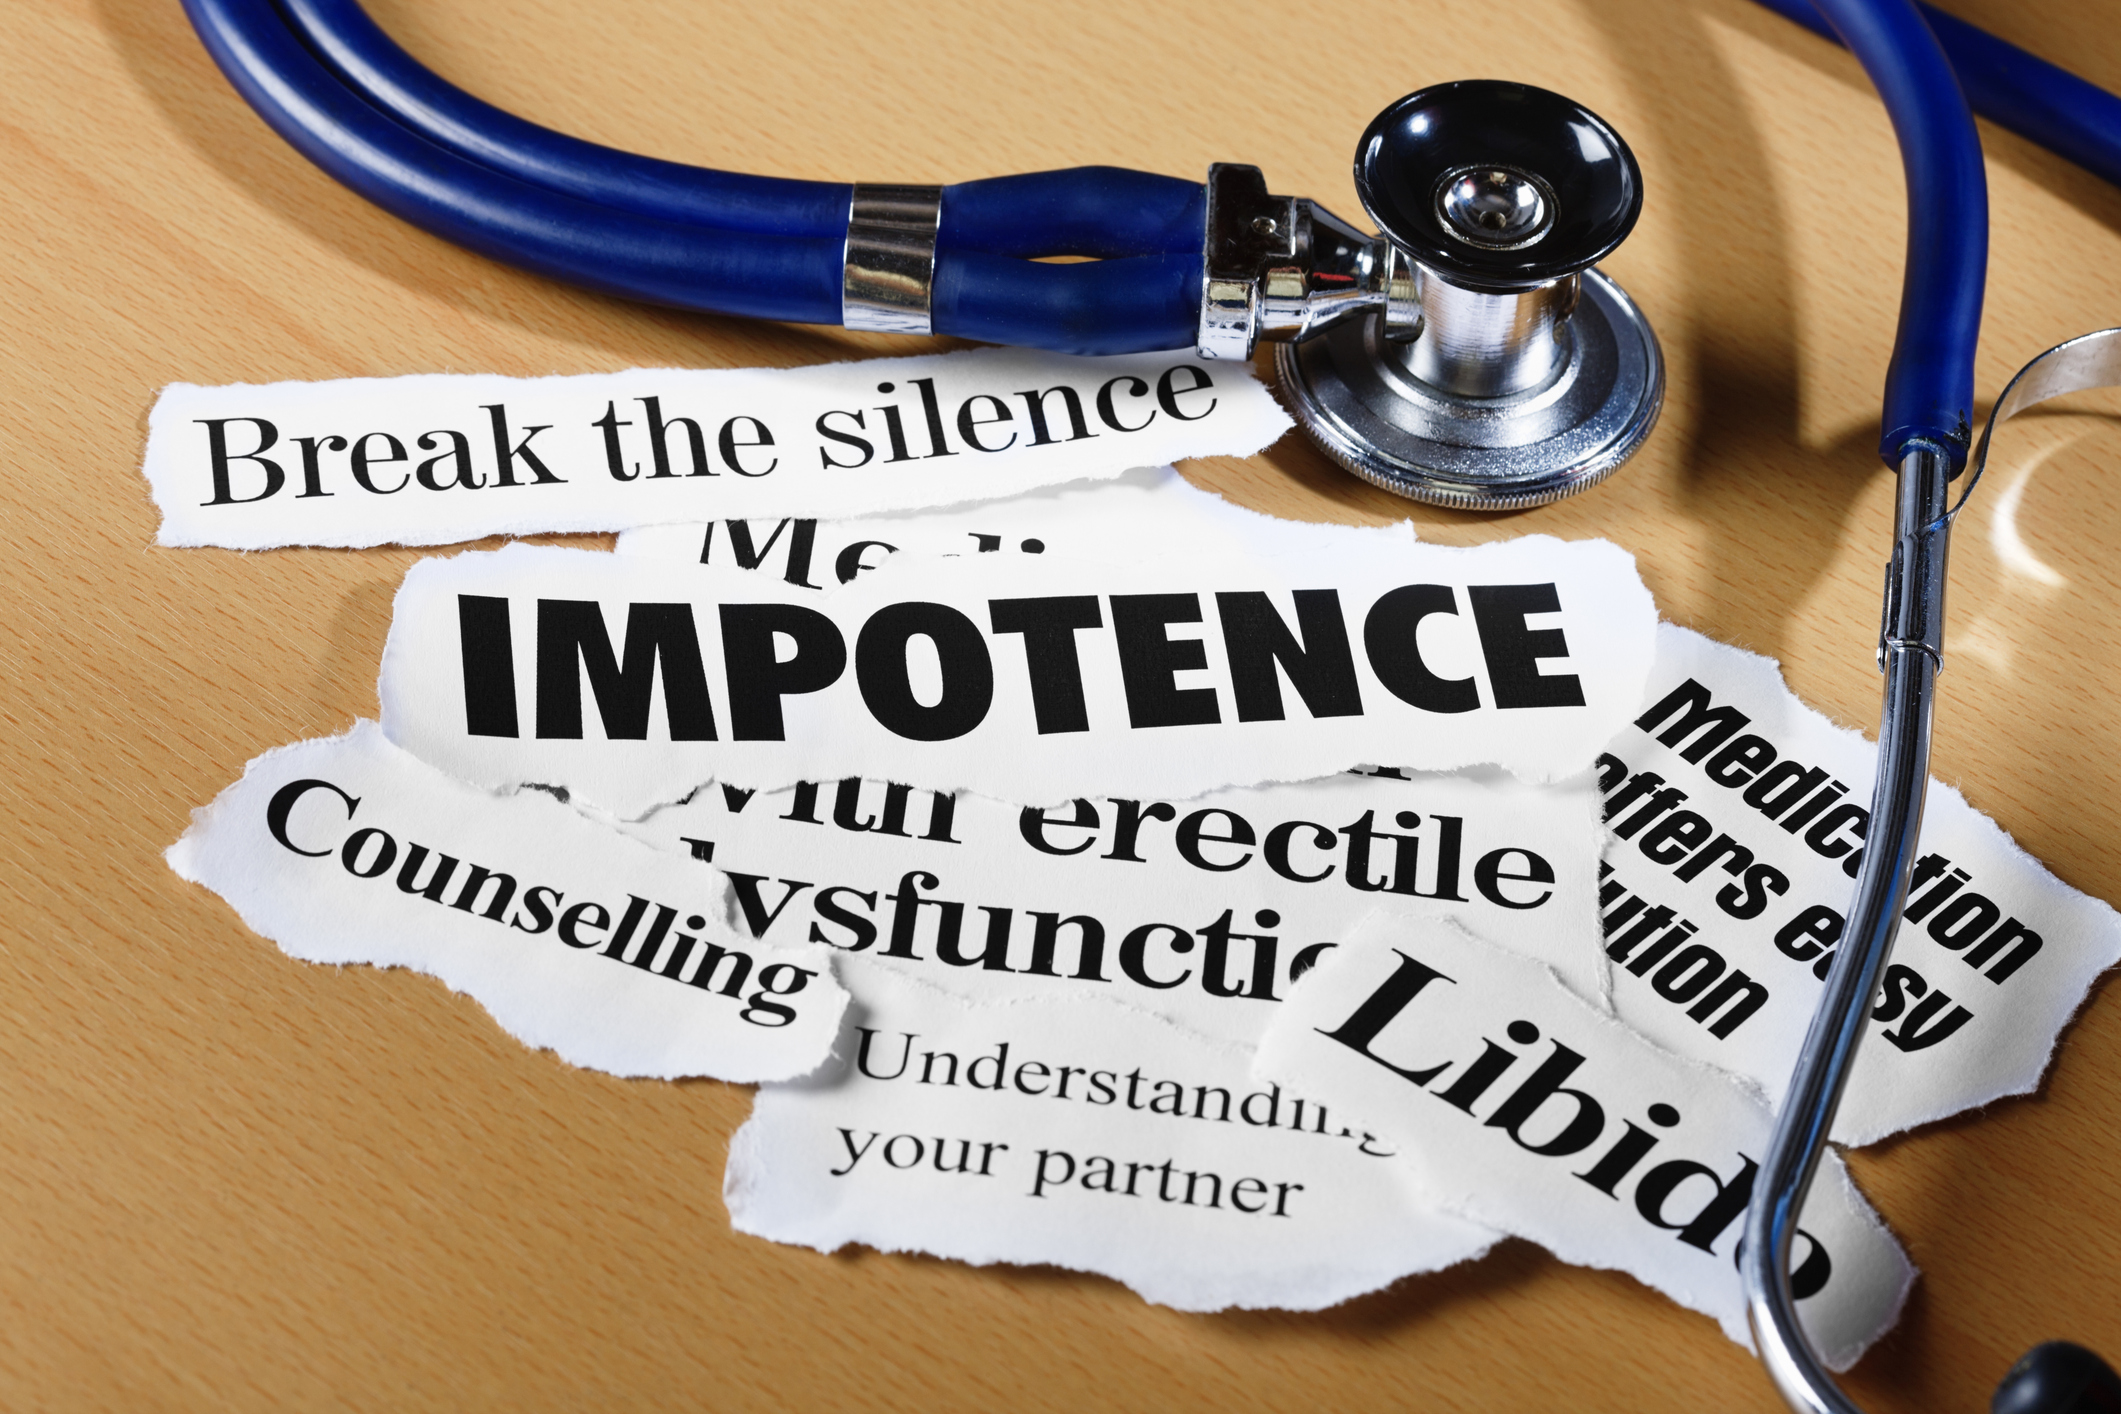 Is Impotence the Same as ED?